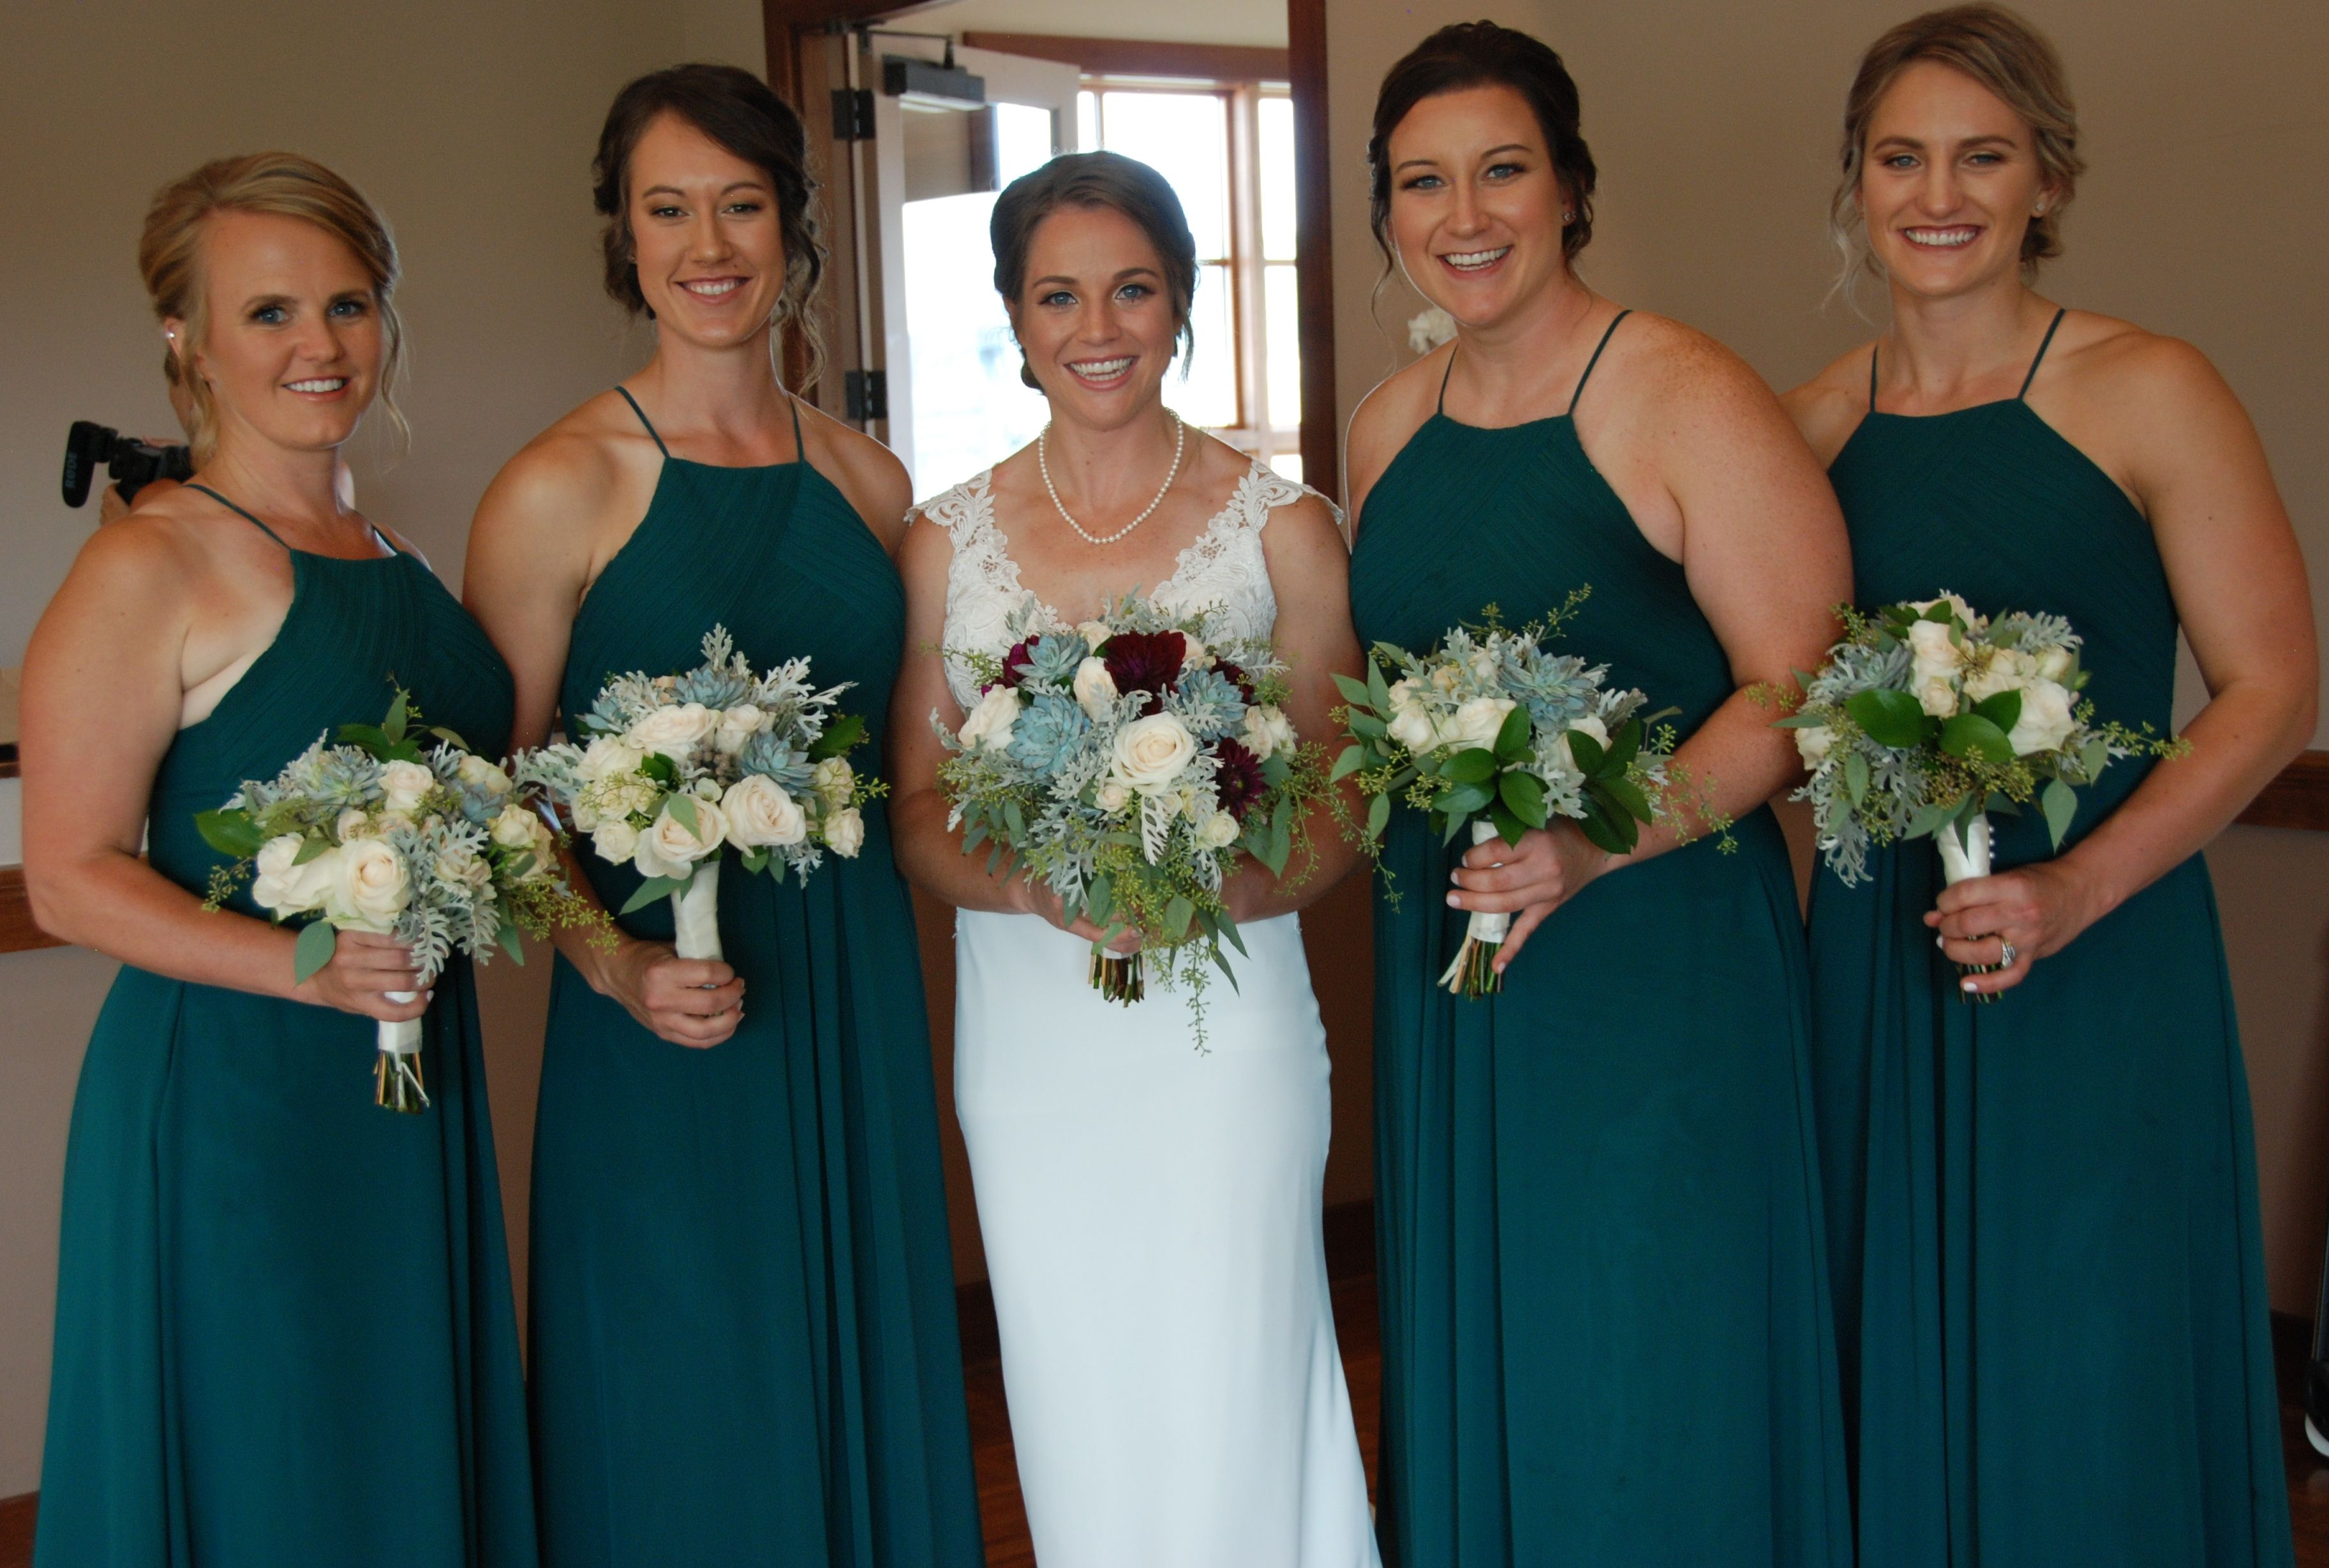 Green Bridesmaid Dresses With Bouquets Of Succulents And Ivory